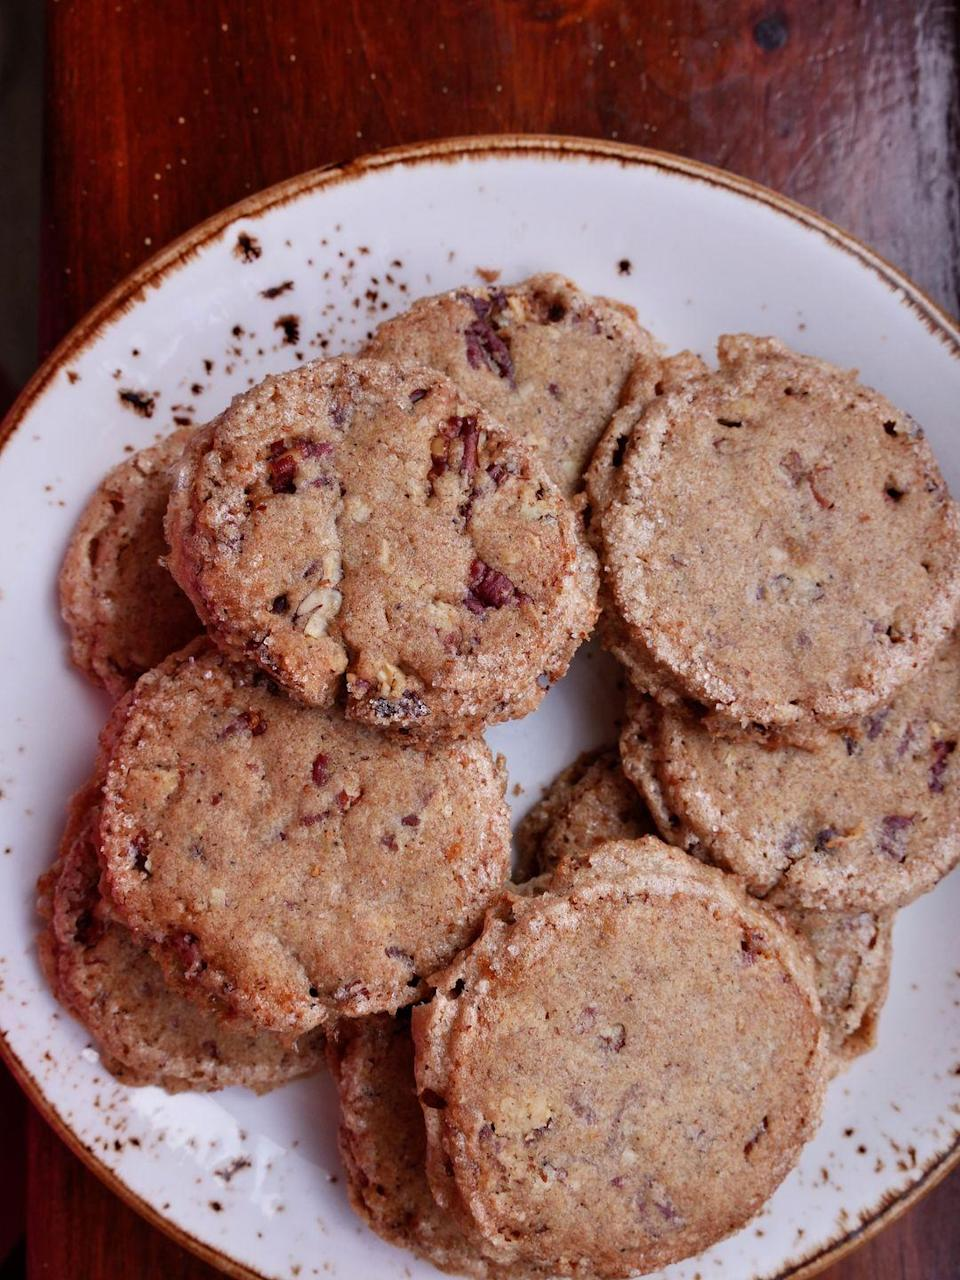 """<p>This recipe also uses whole wheat flour in addition to all-purpose flour for a nicely nutty, earthy-sweet twist. </p><p>Get the recipe from <a href=""""https://www.delish.com/cooking/recipe-ideas/a37779868/pecan-sandies-recipe/"""" rel=""""nofollow noopener"""" target=""""_blank"""" data-ylk=""""slk:Delish"""" class=""""link rapid-noclick-resp"""">Delish</a>.</p>"""